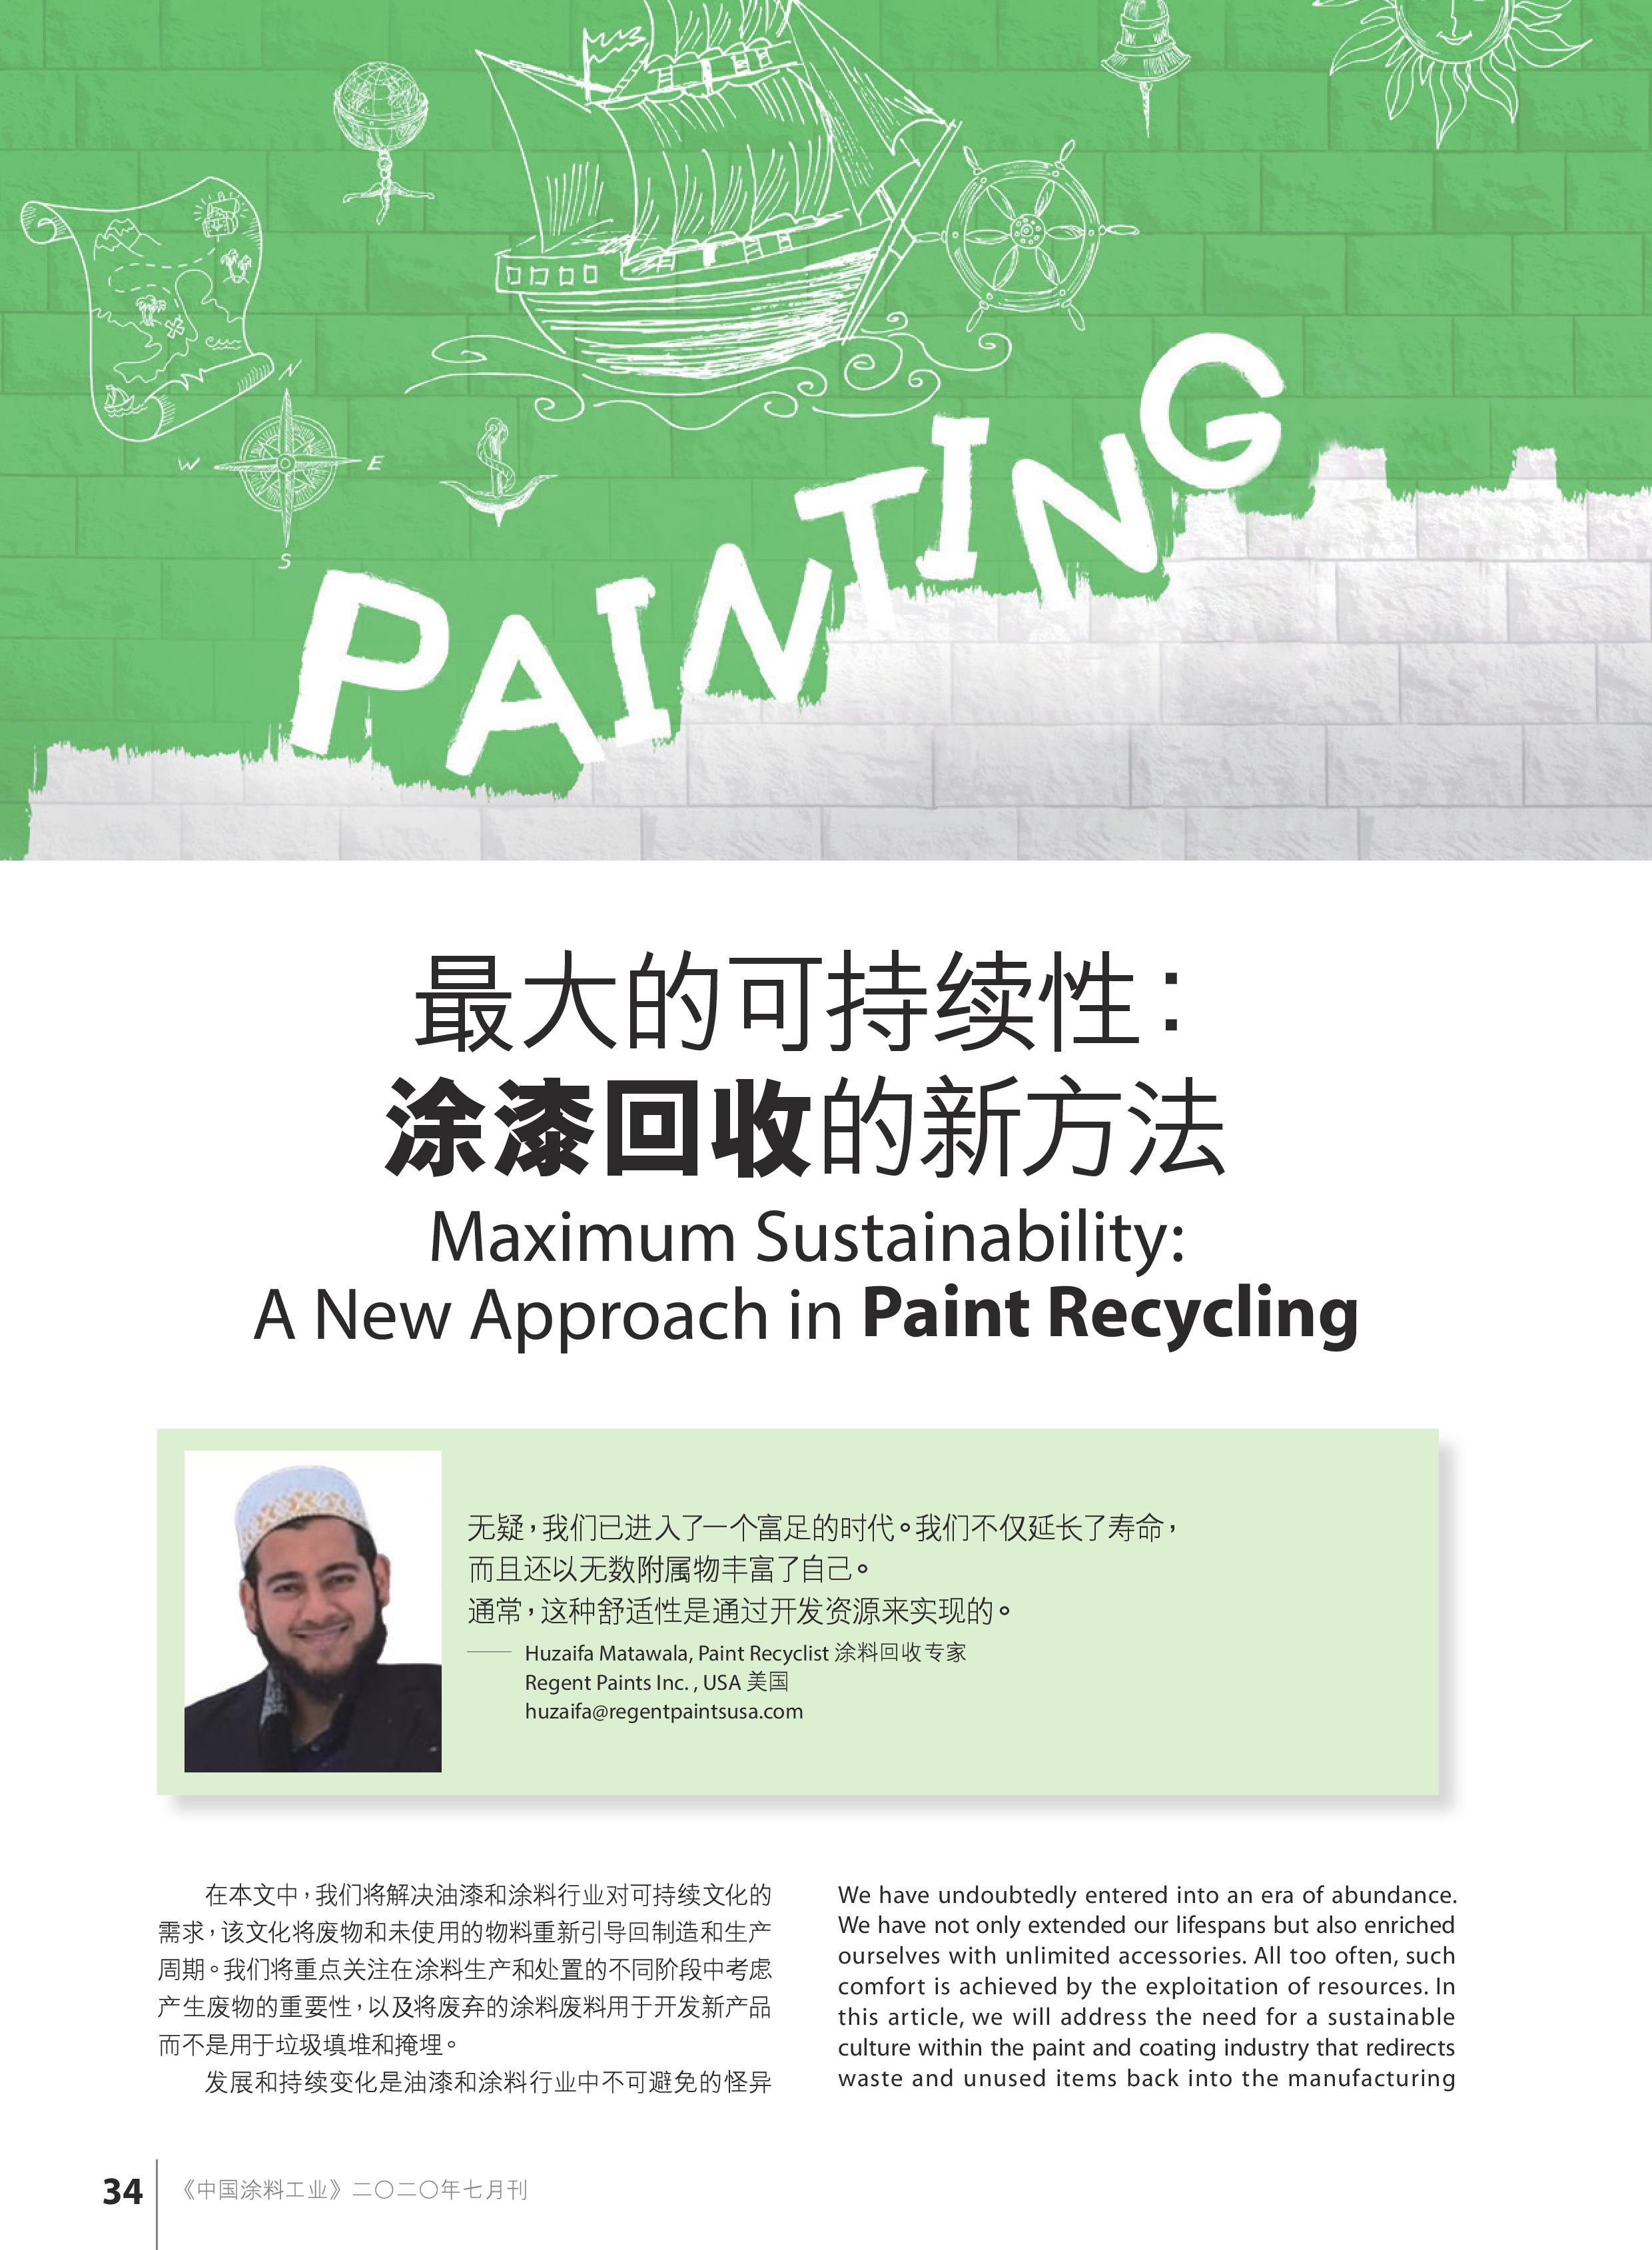 Maximum sustainability - A new approach in paint recycling